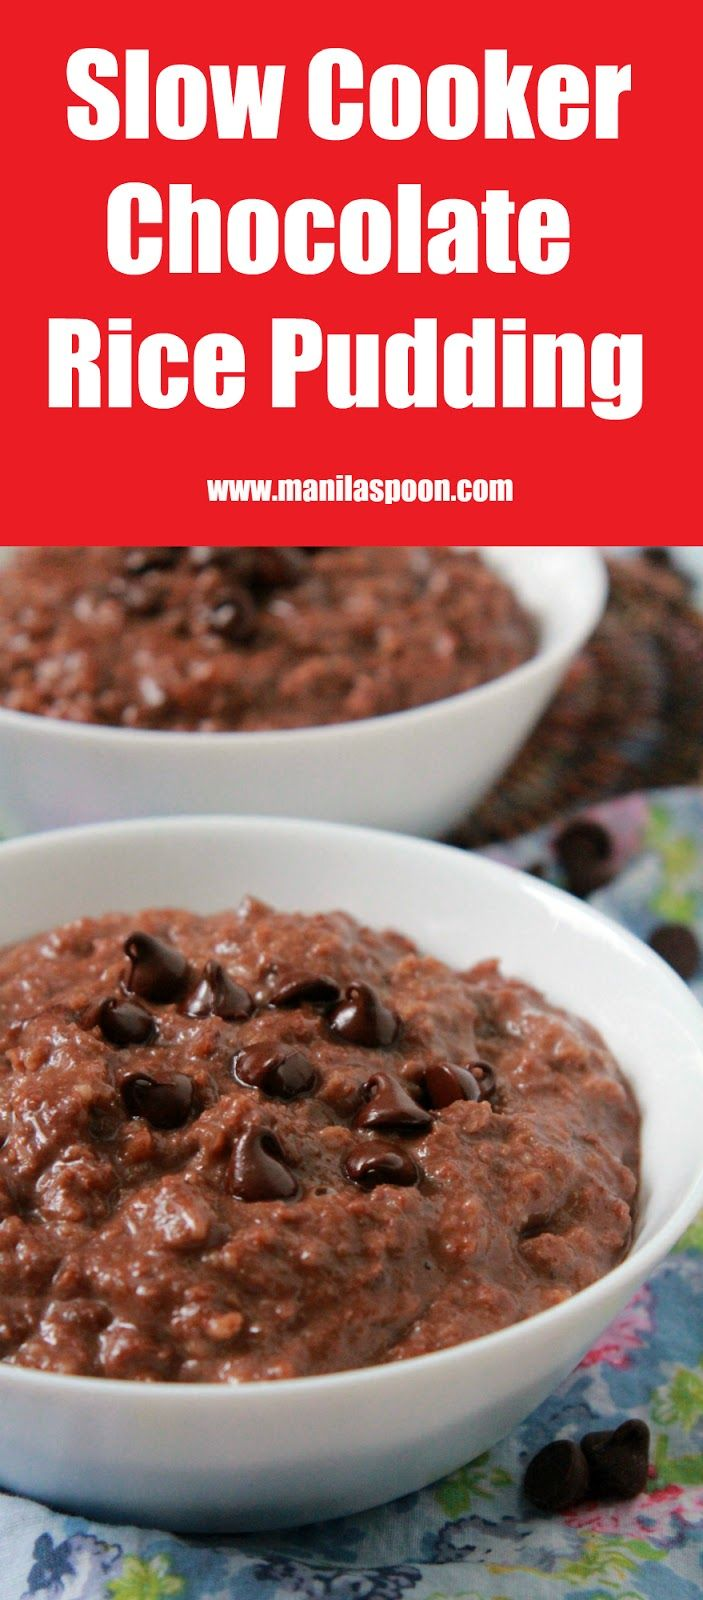 Sticky rice cooked in coconut milk and chocolate. This chocolate rice pudding is the ultimate breakfast sweet treat or when served with ice cream - a truly yummy dessert - Champorado!